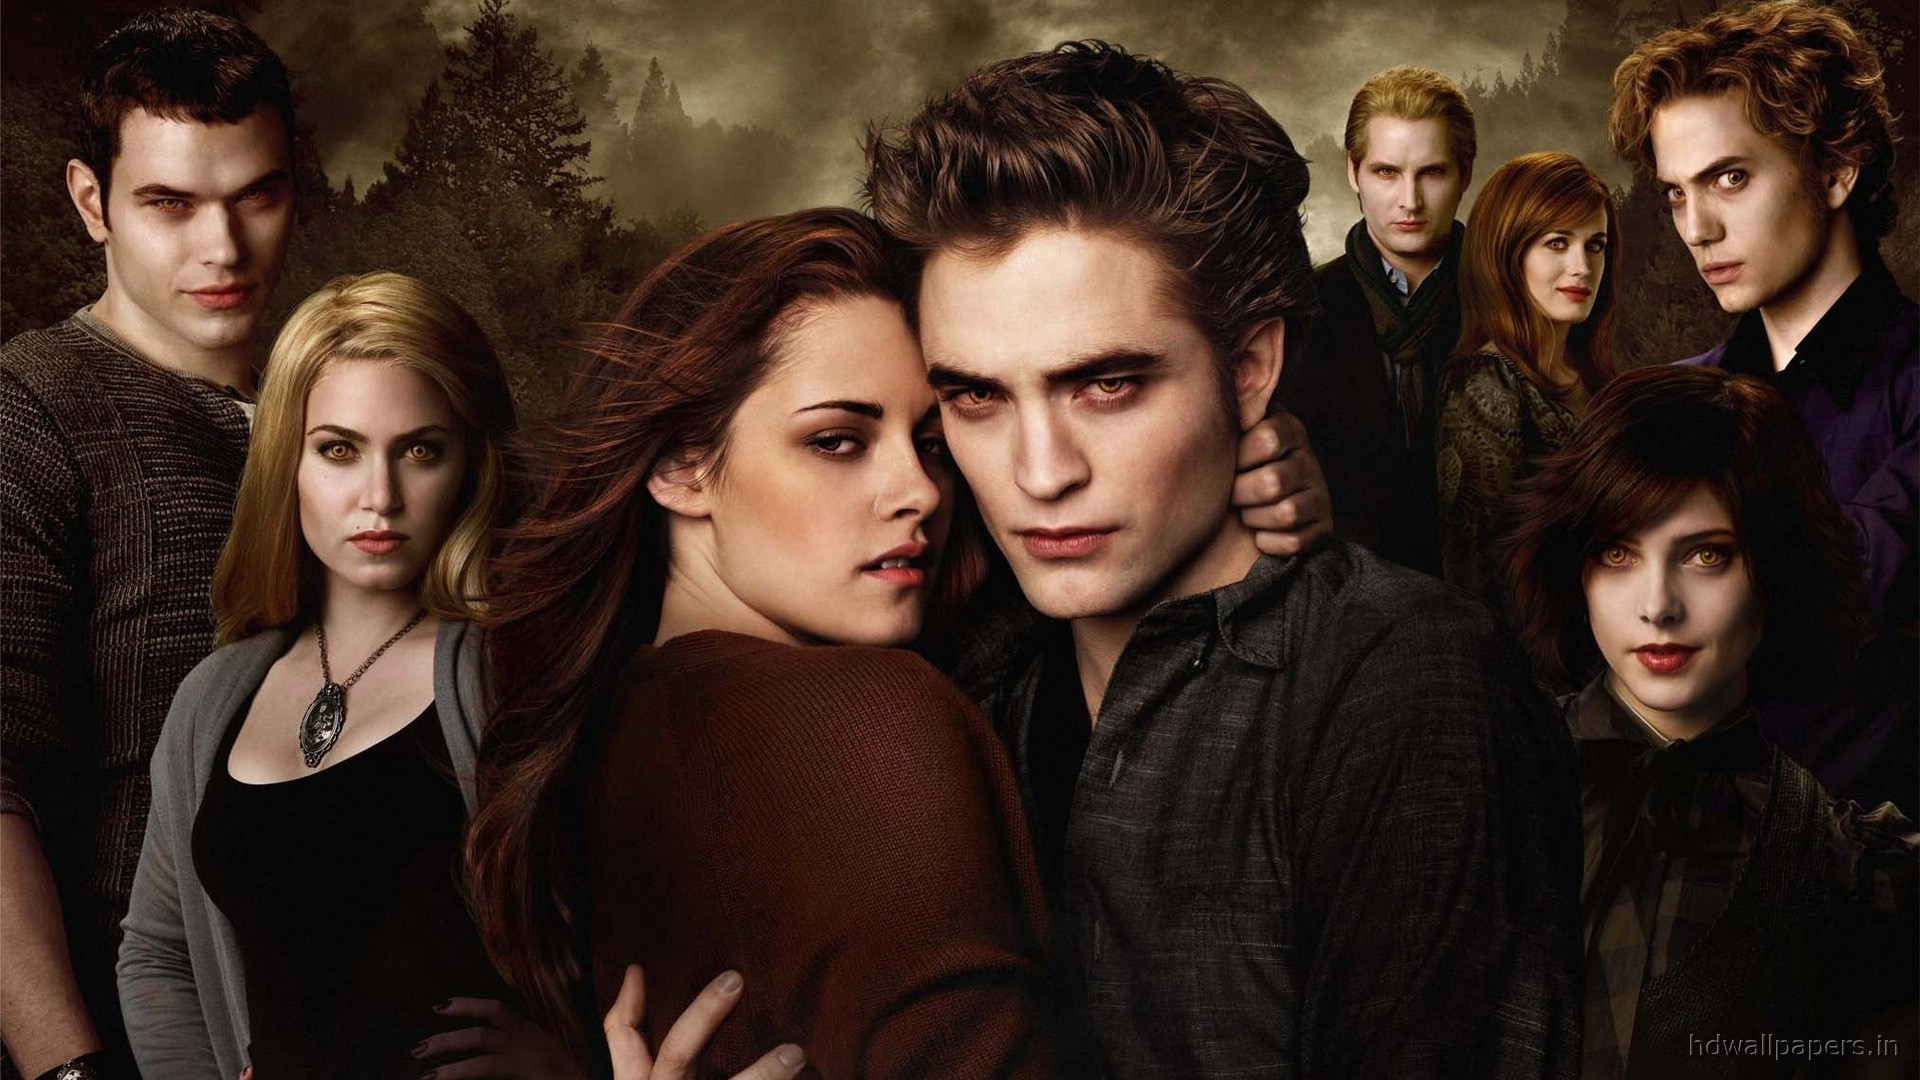 Twilight Breaking Dawn Wallpaper For Iphone Twilight Saga Breaking Dawn Wallpapers Hd Wallpapers